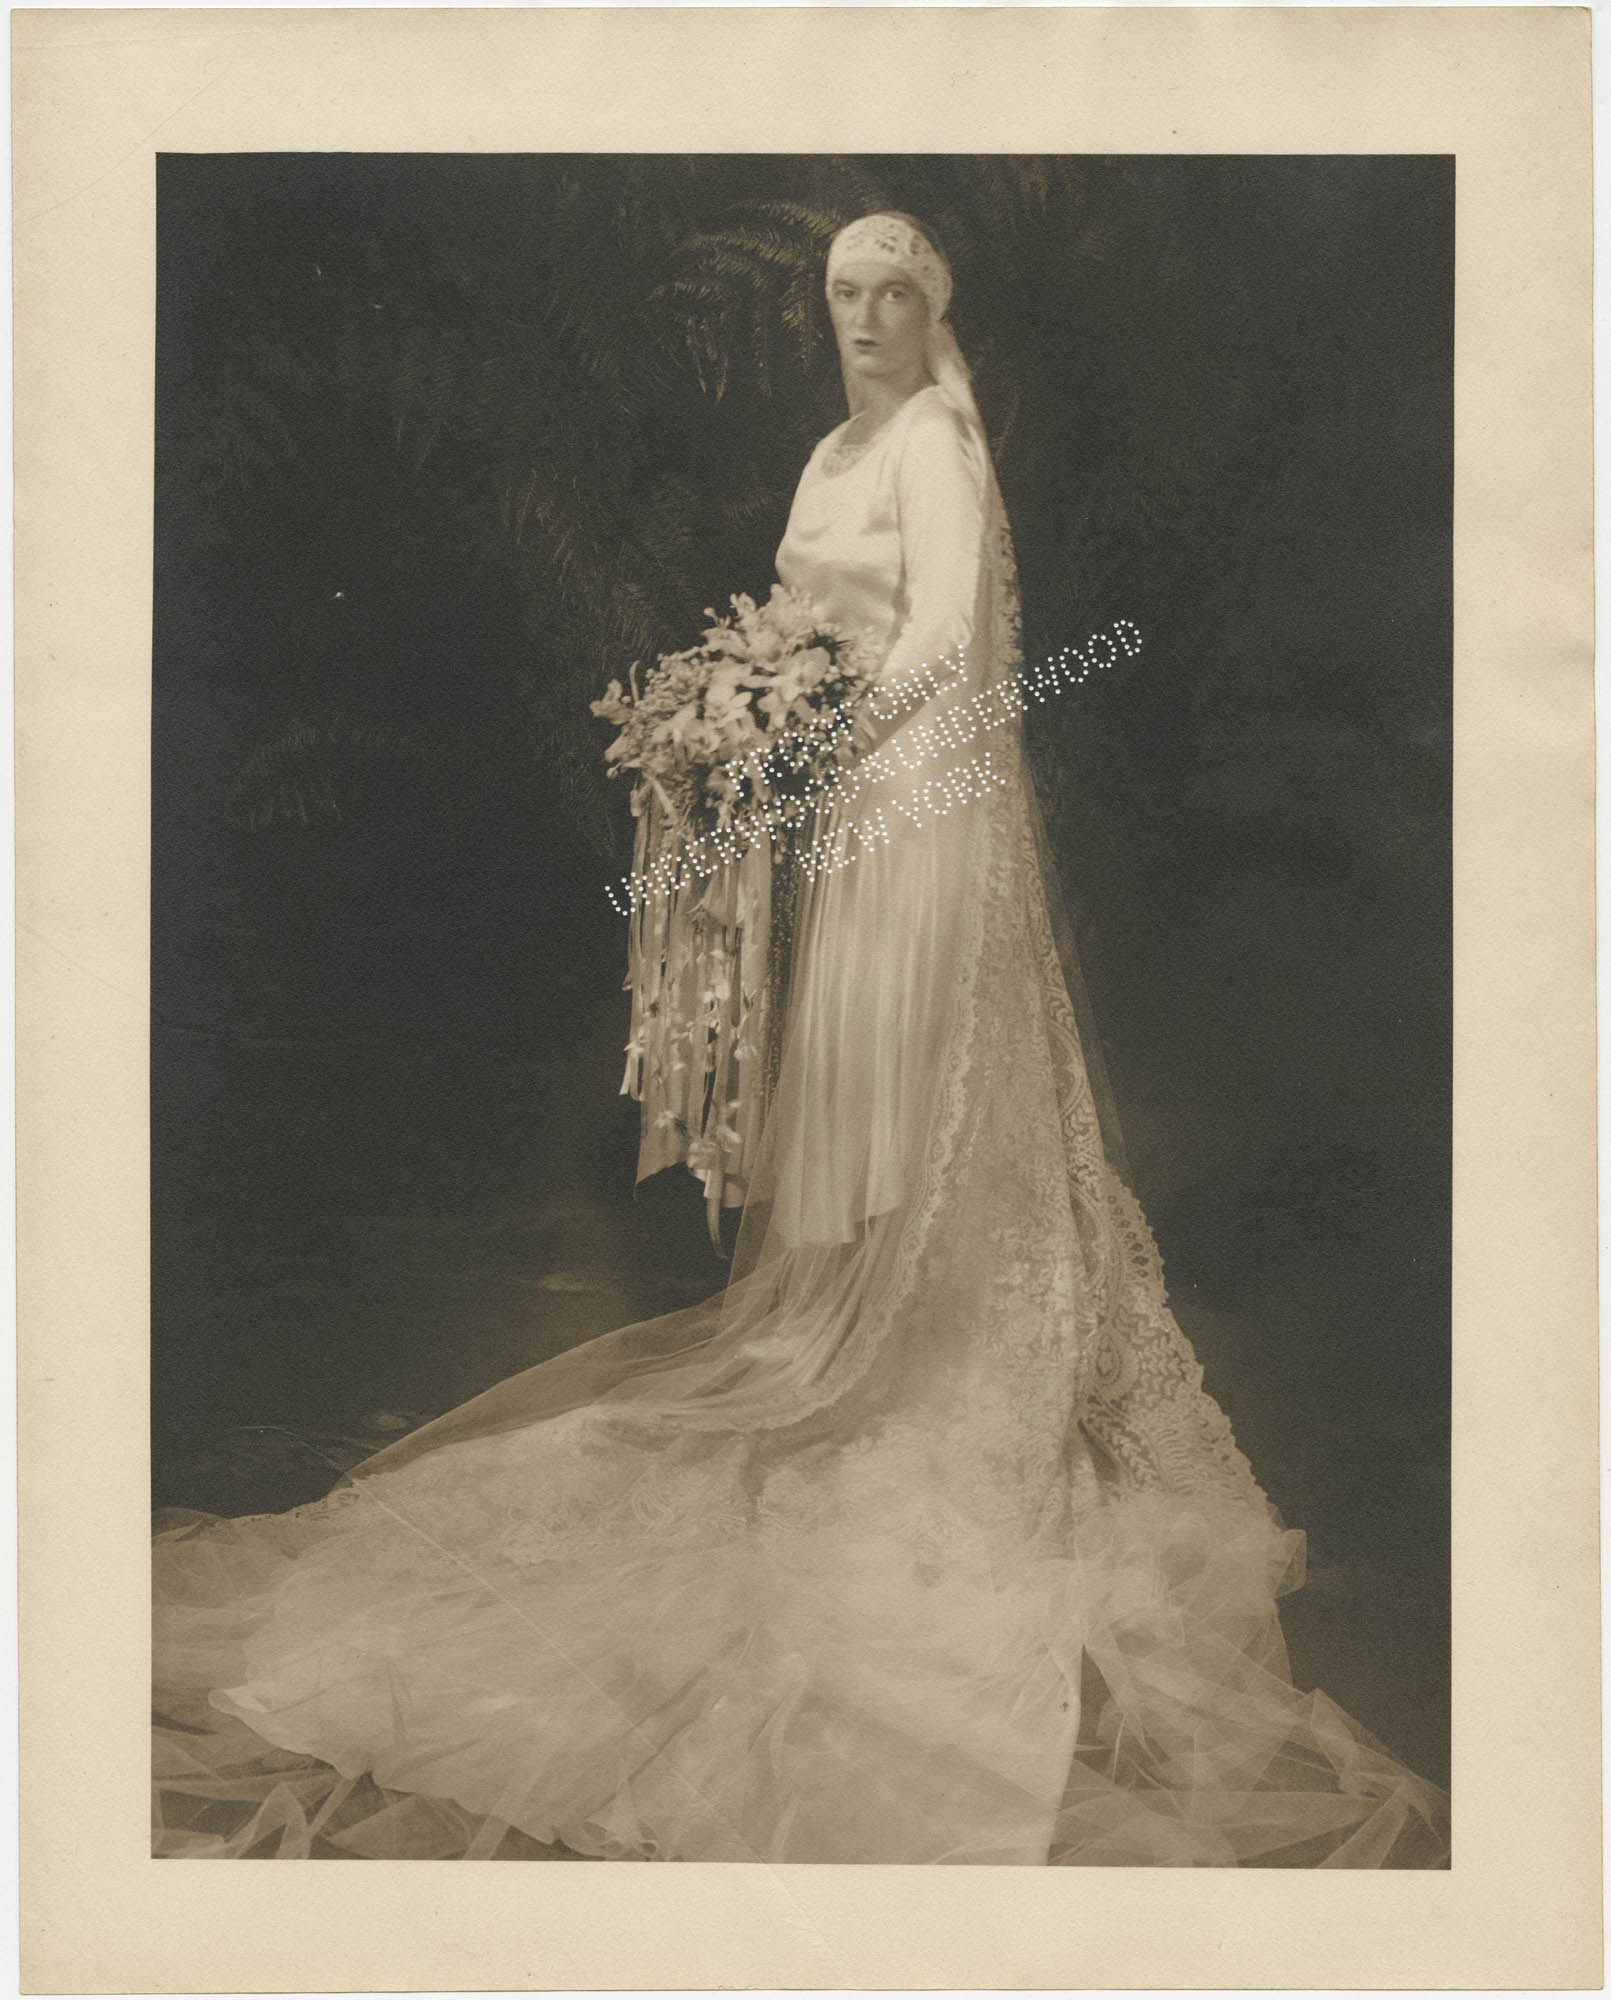 Bridal portrait photograph of Gertrude Legendre